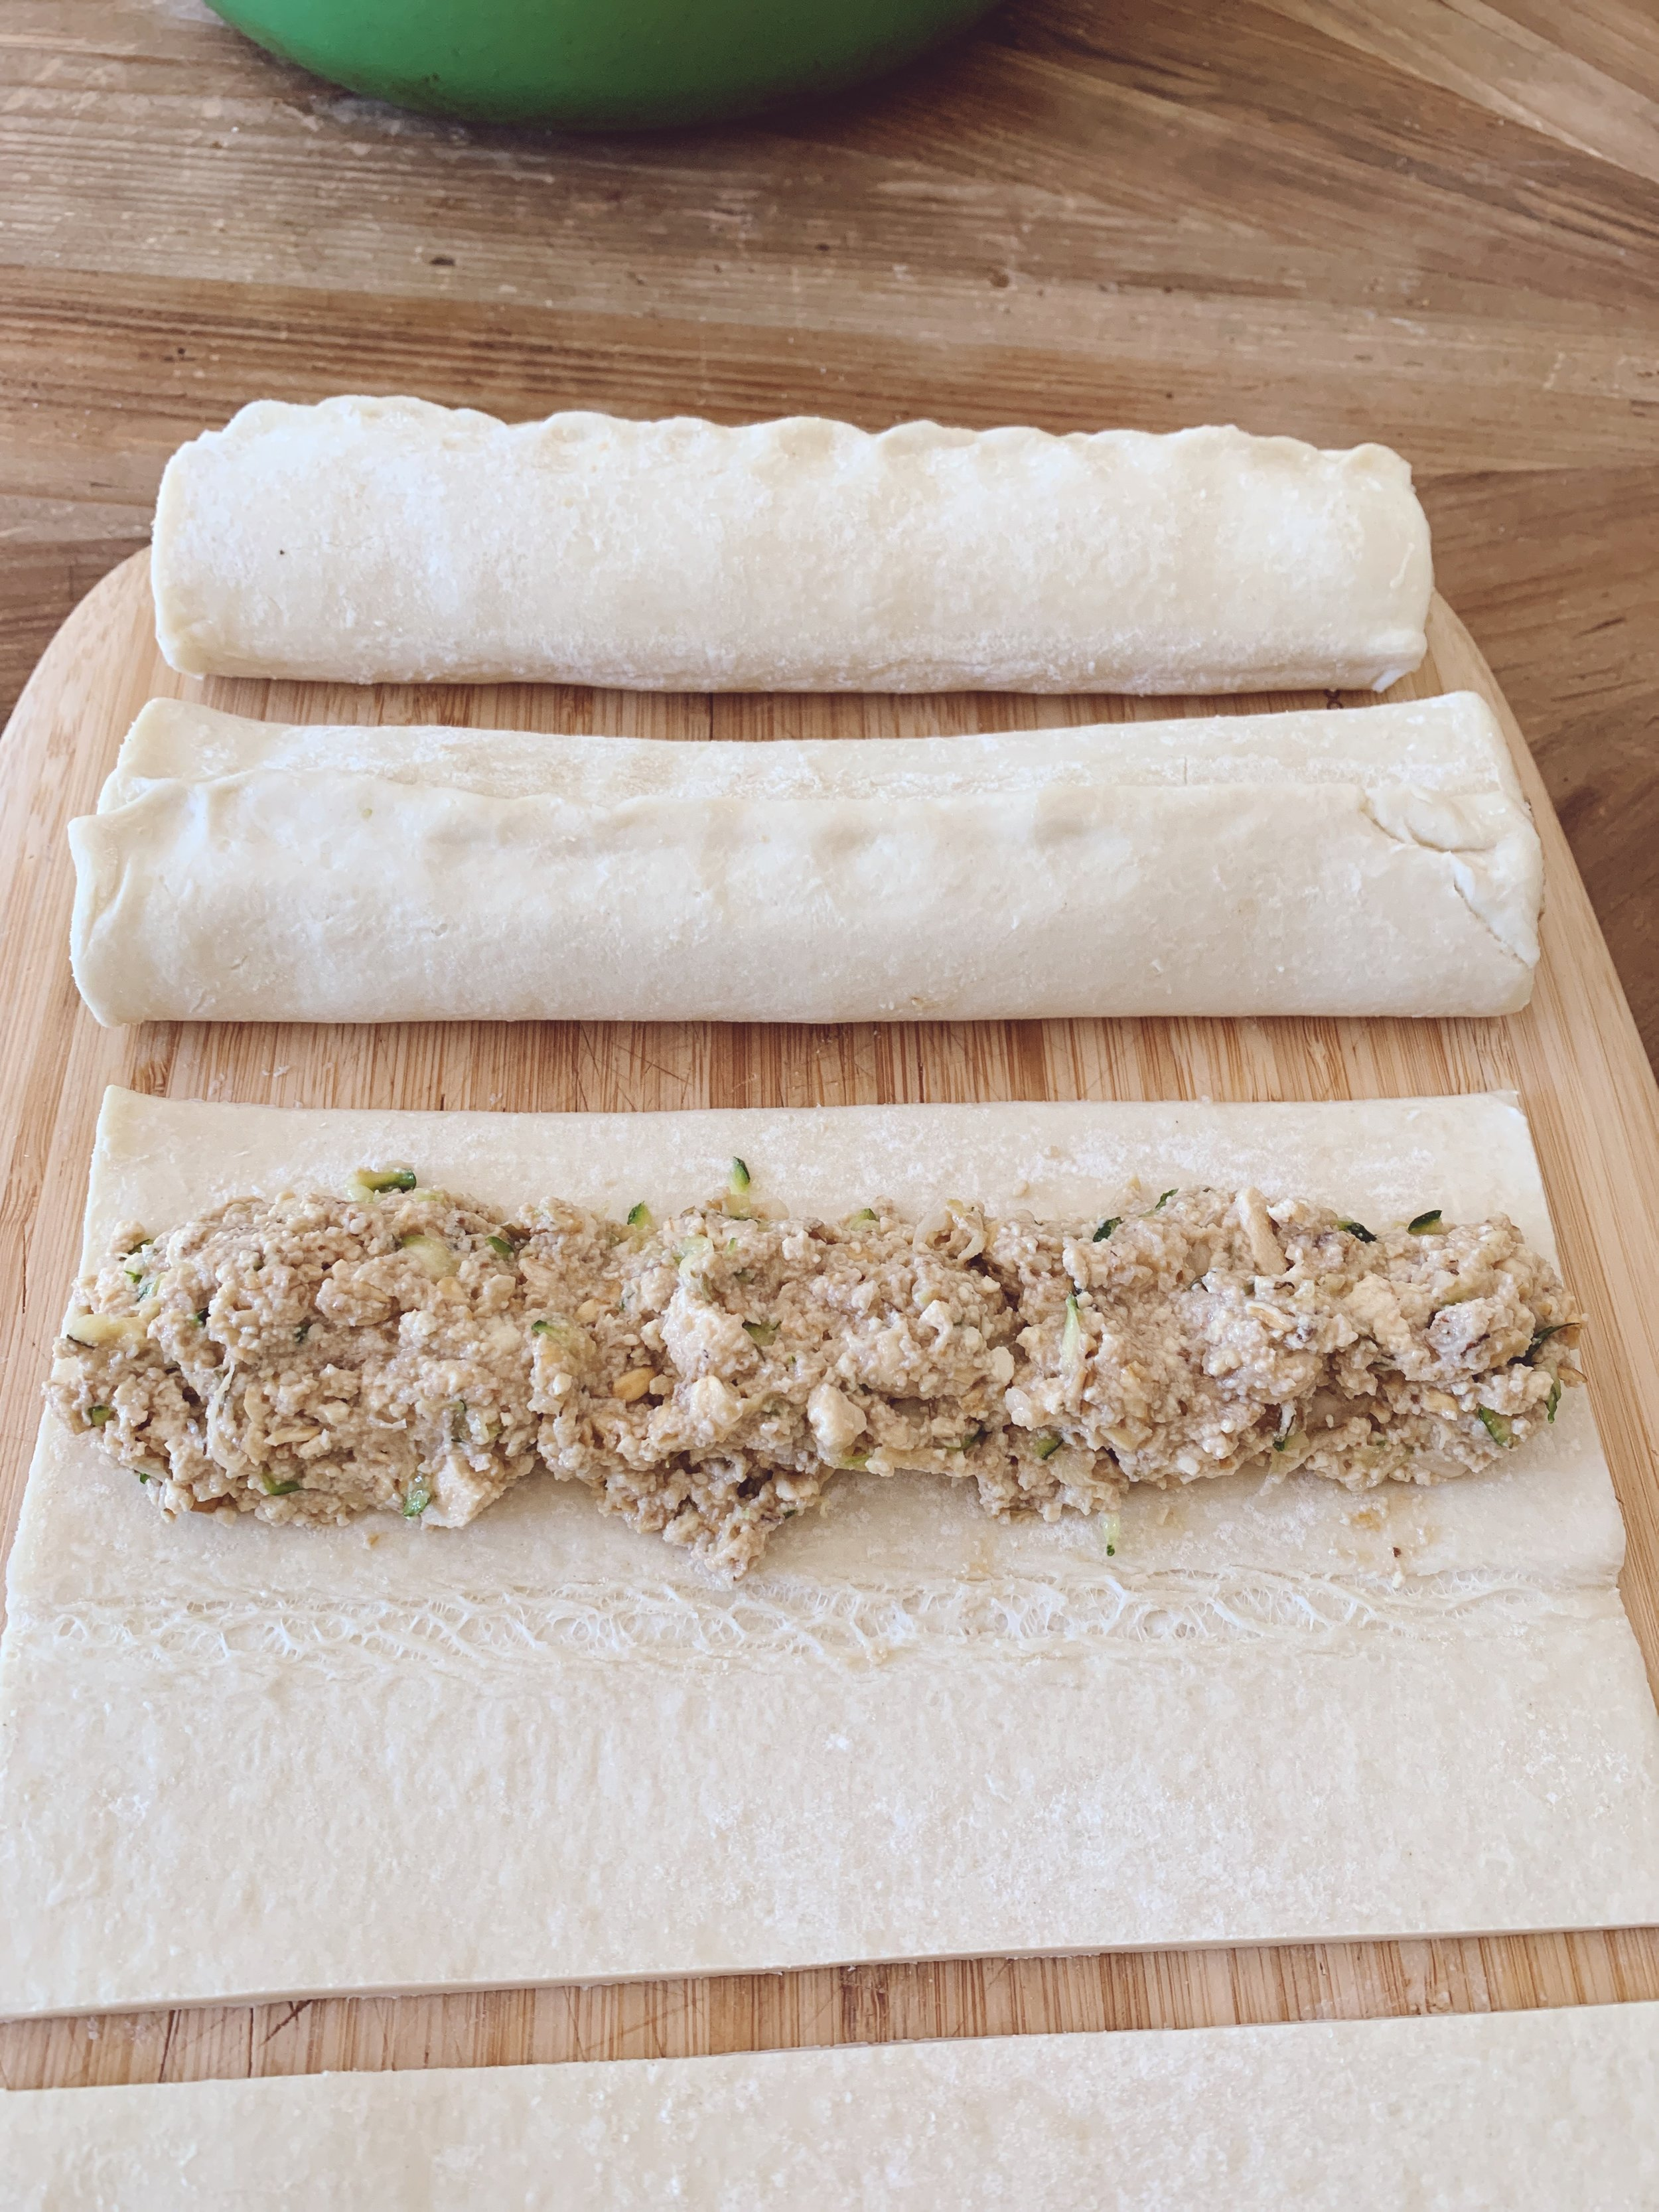 Cut your pastry either in half or thirds depending upon the size of the pastry. Lay sausage mix down centre of pastry. Bring pastry edges together as you make a roll shape. Press the pastry edges together.